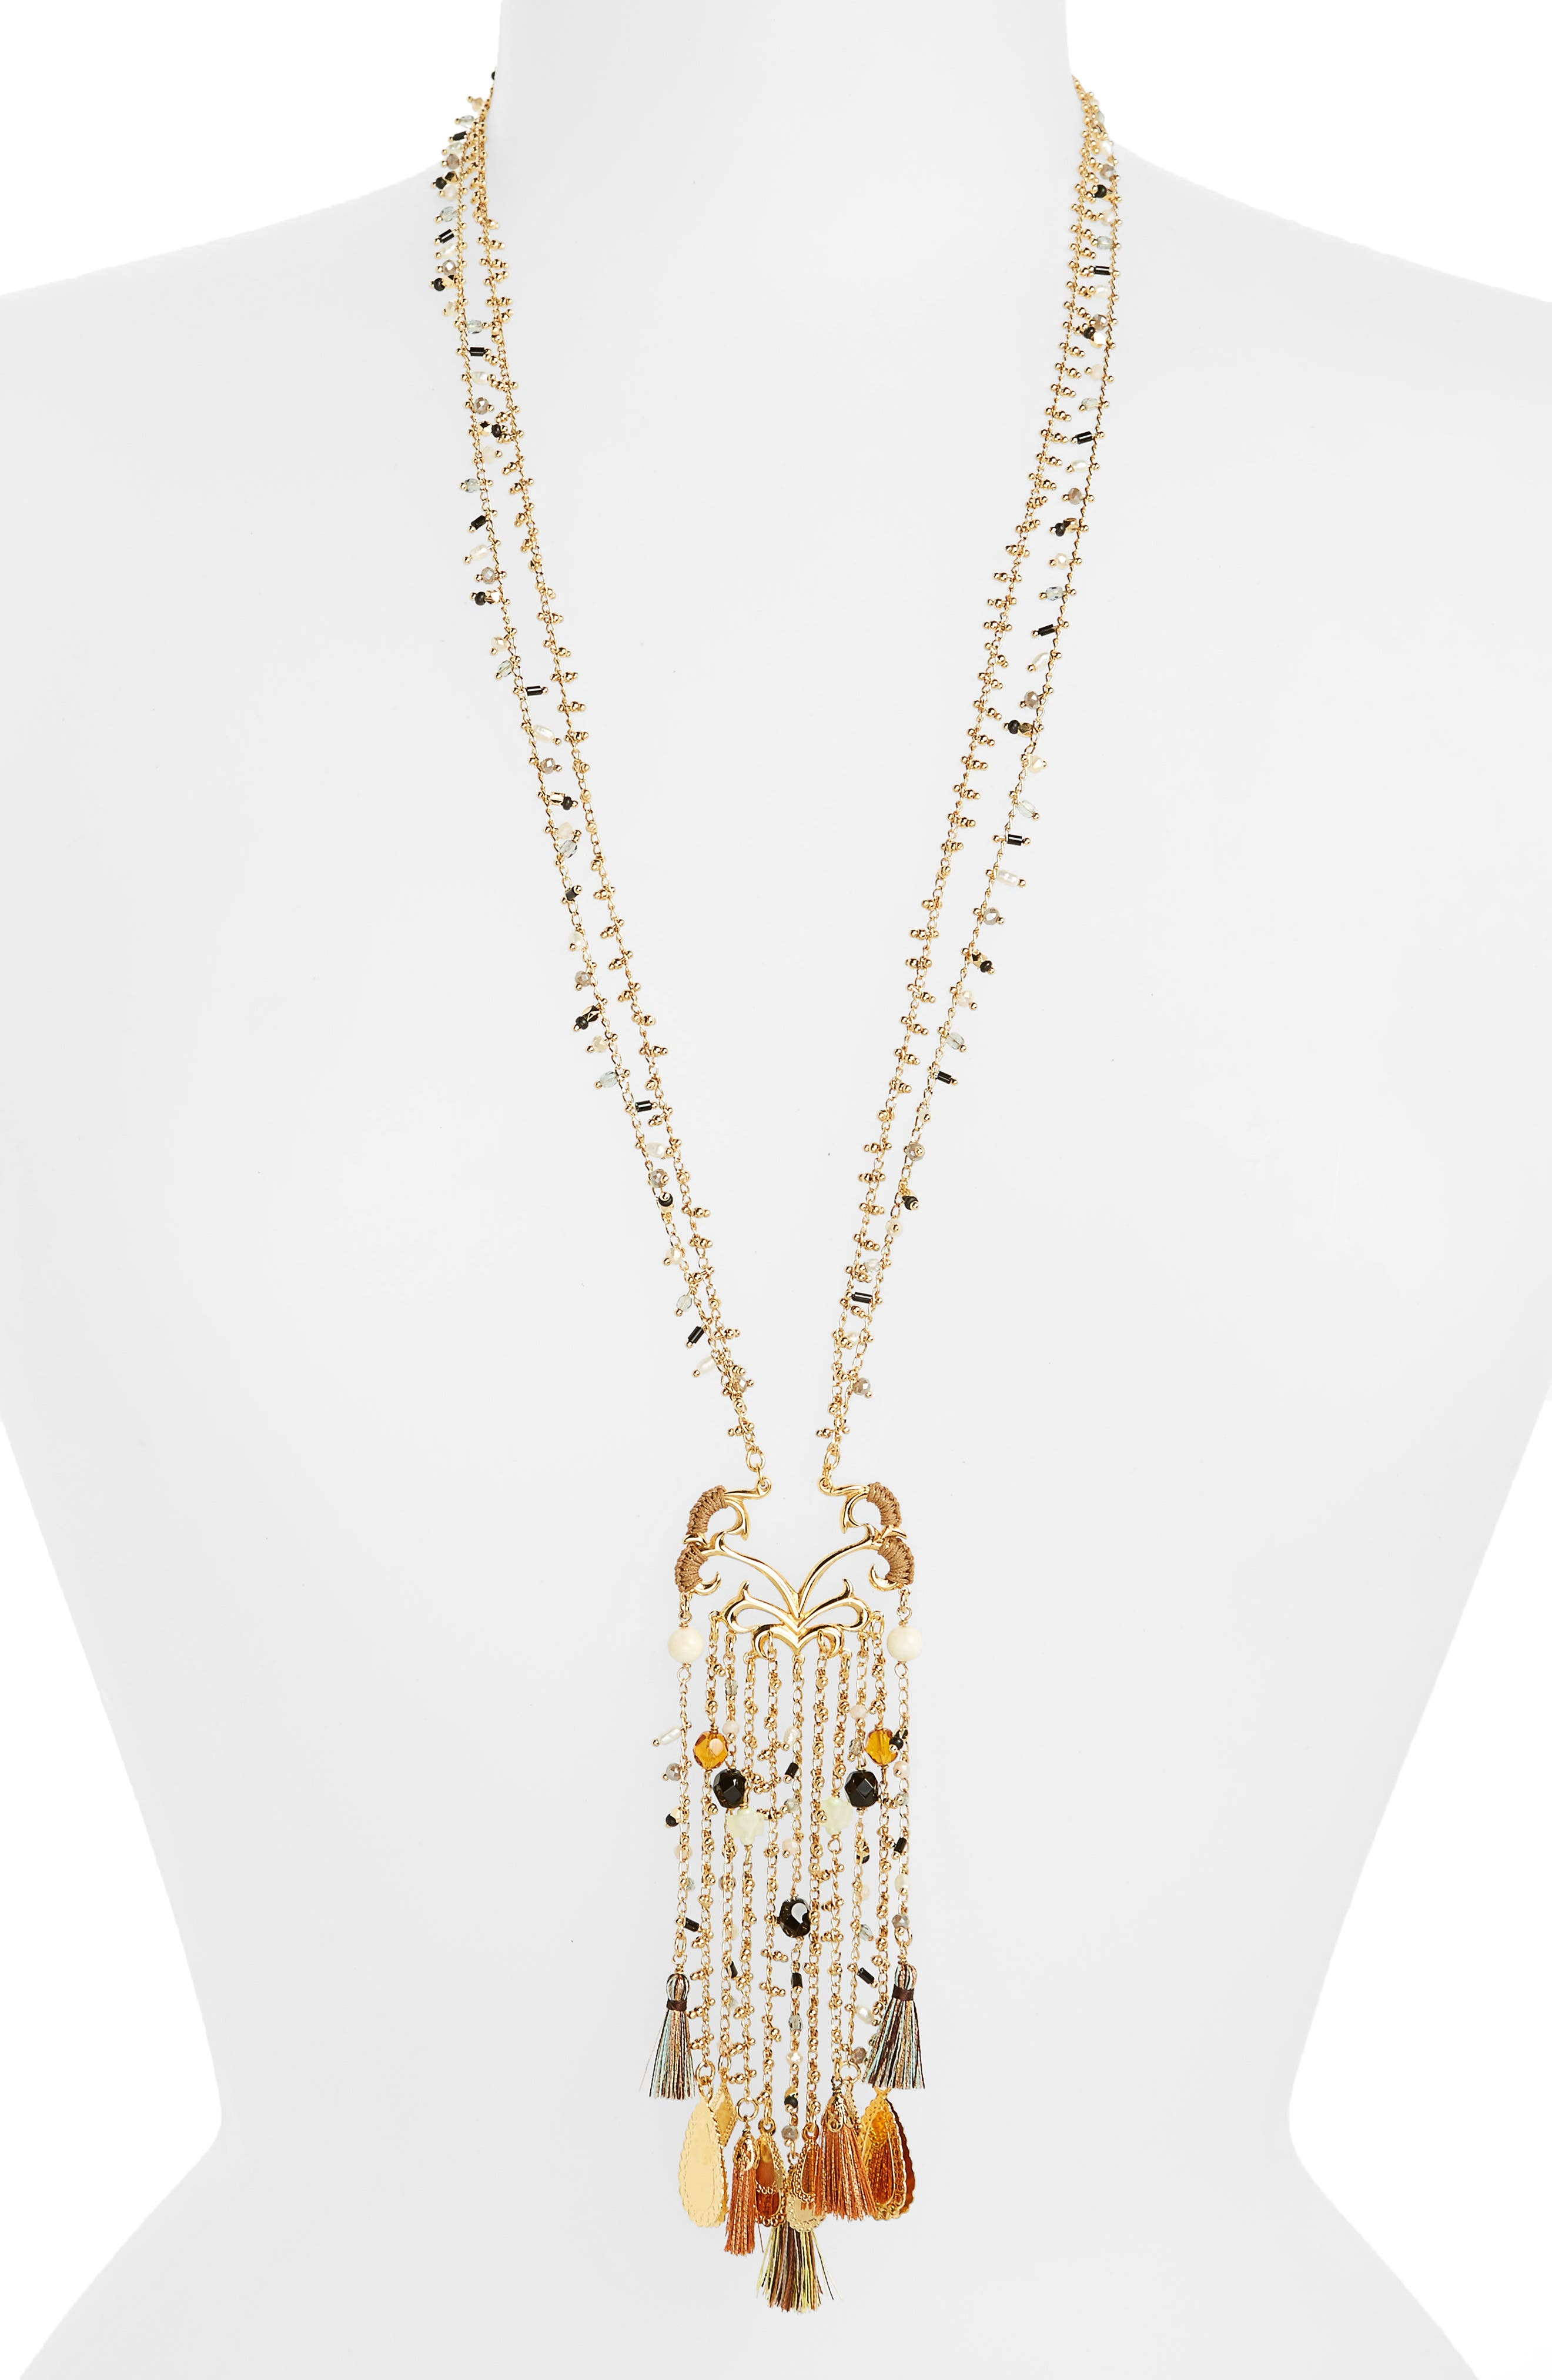 Volupte Crystal Necklace,                             Main thumbnail 1, color,                             710